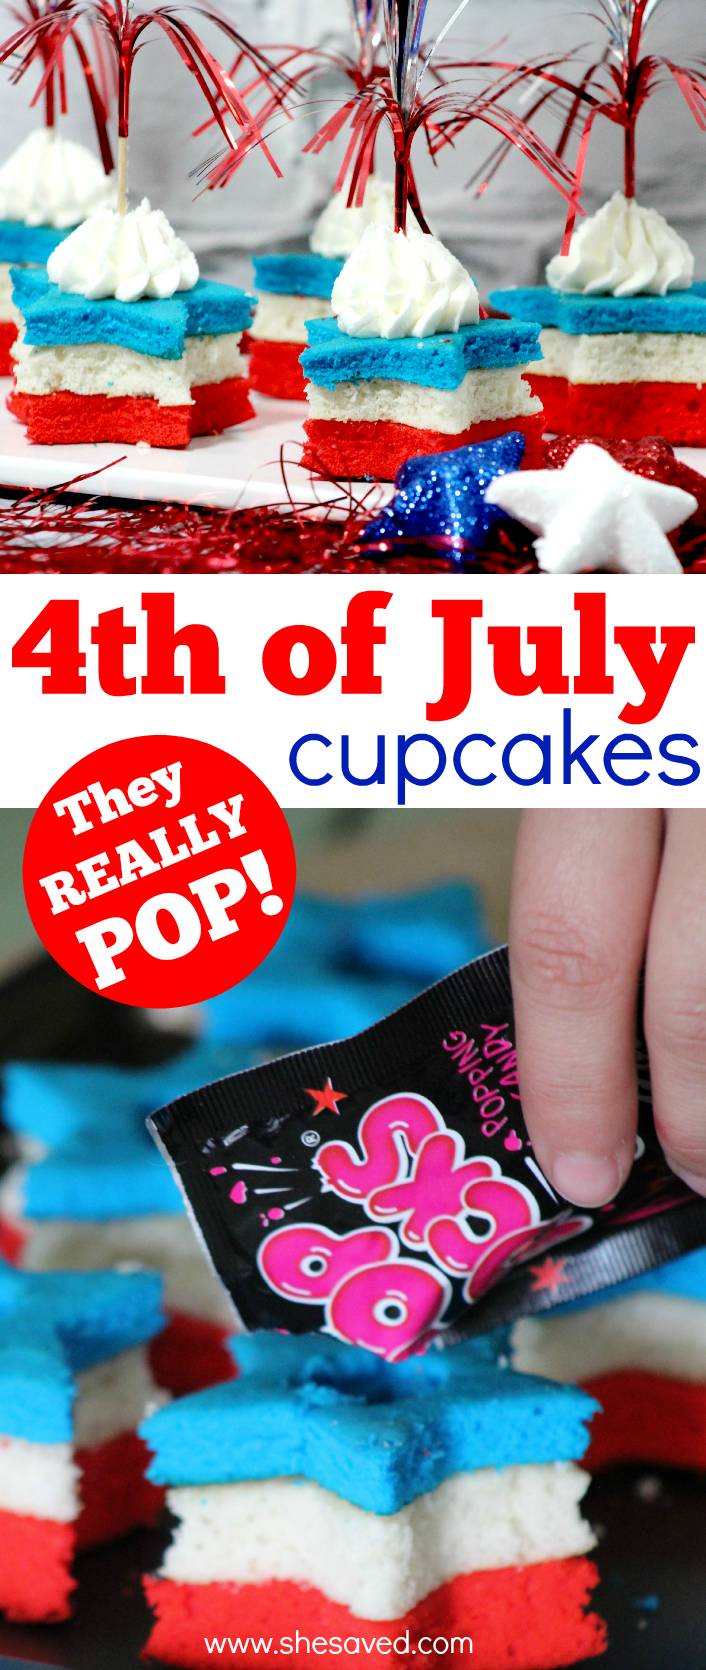 4th of July firework cupcake recipe with Pop Rocks that really pops!